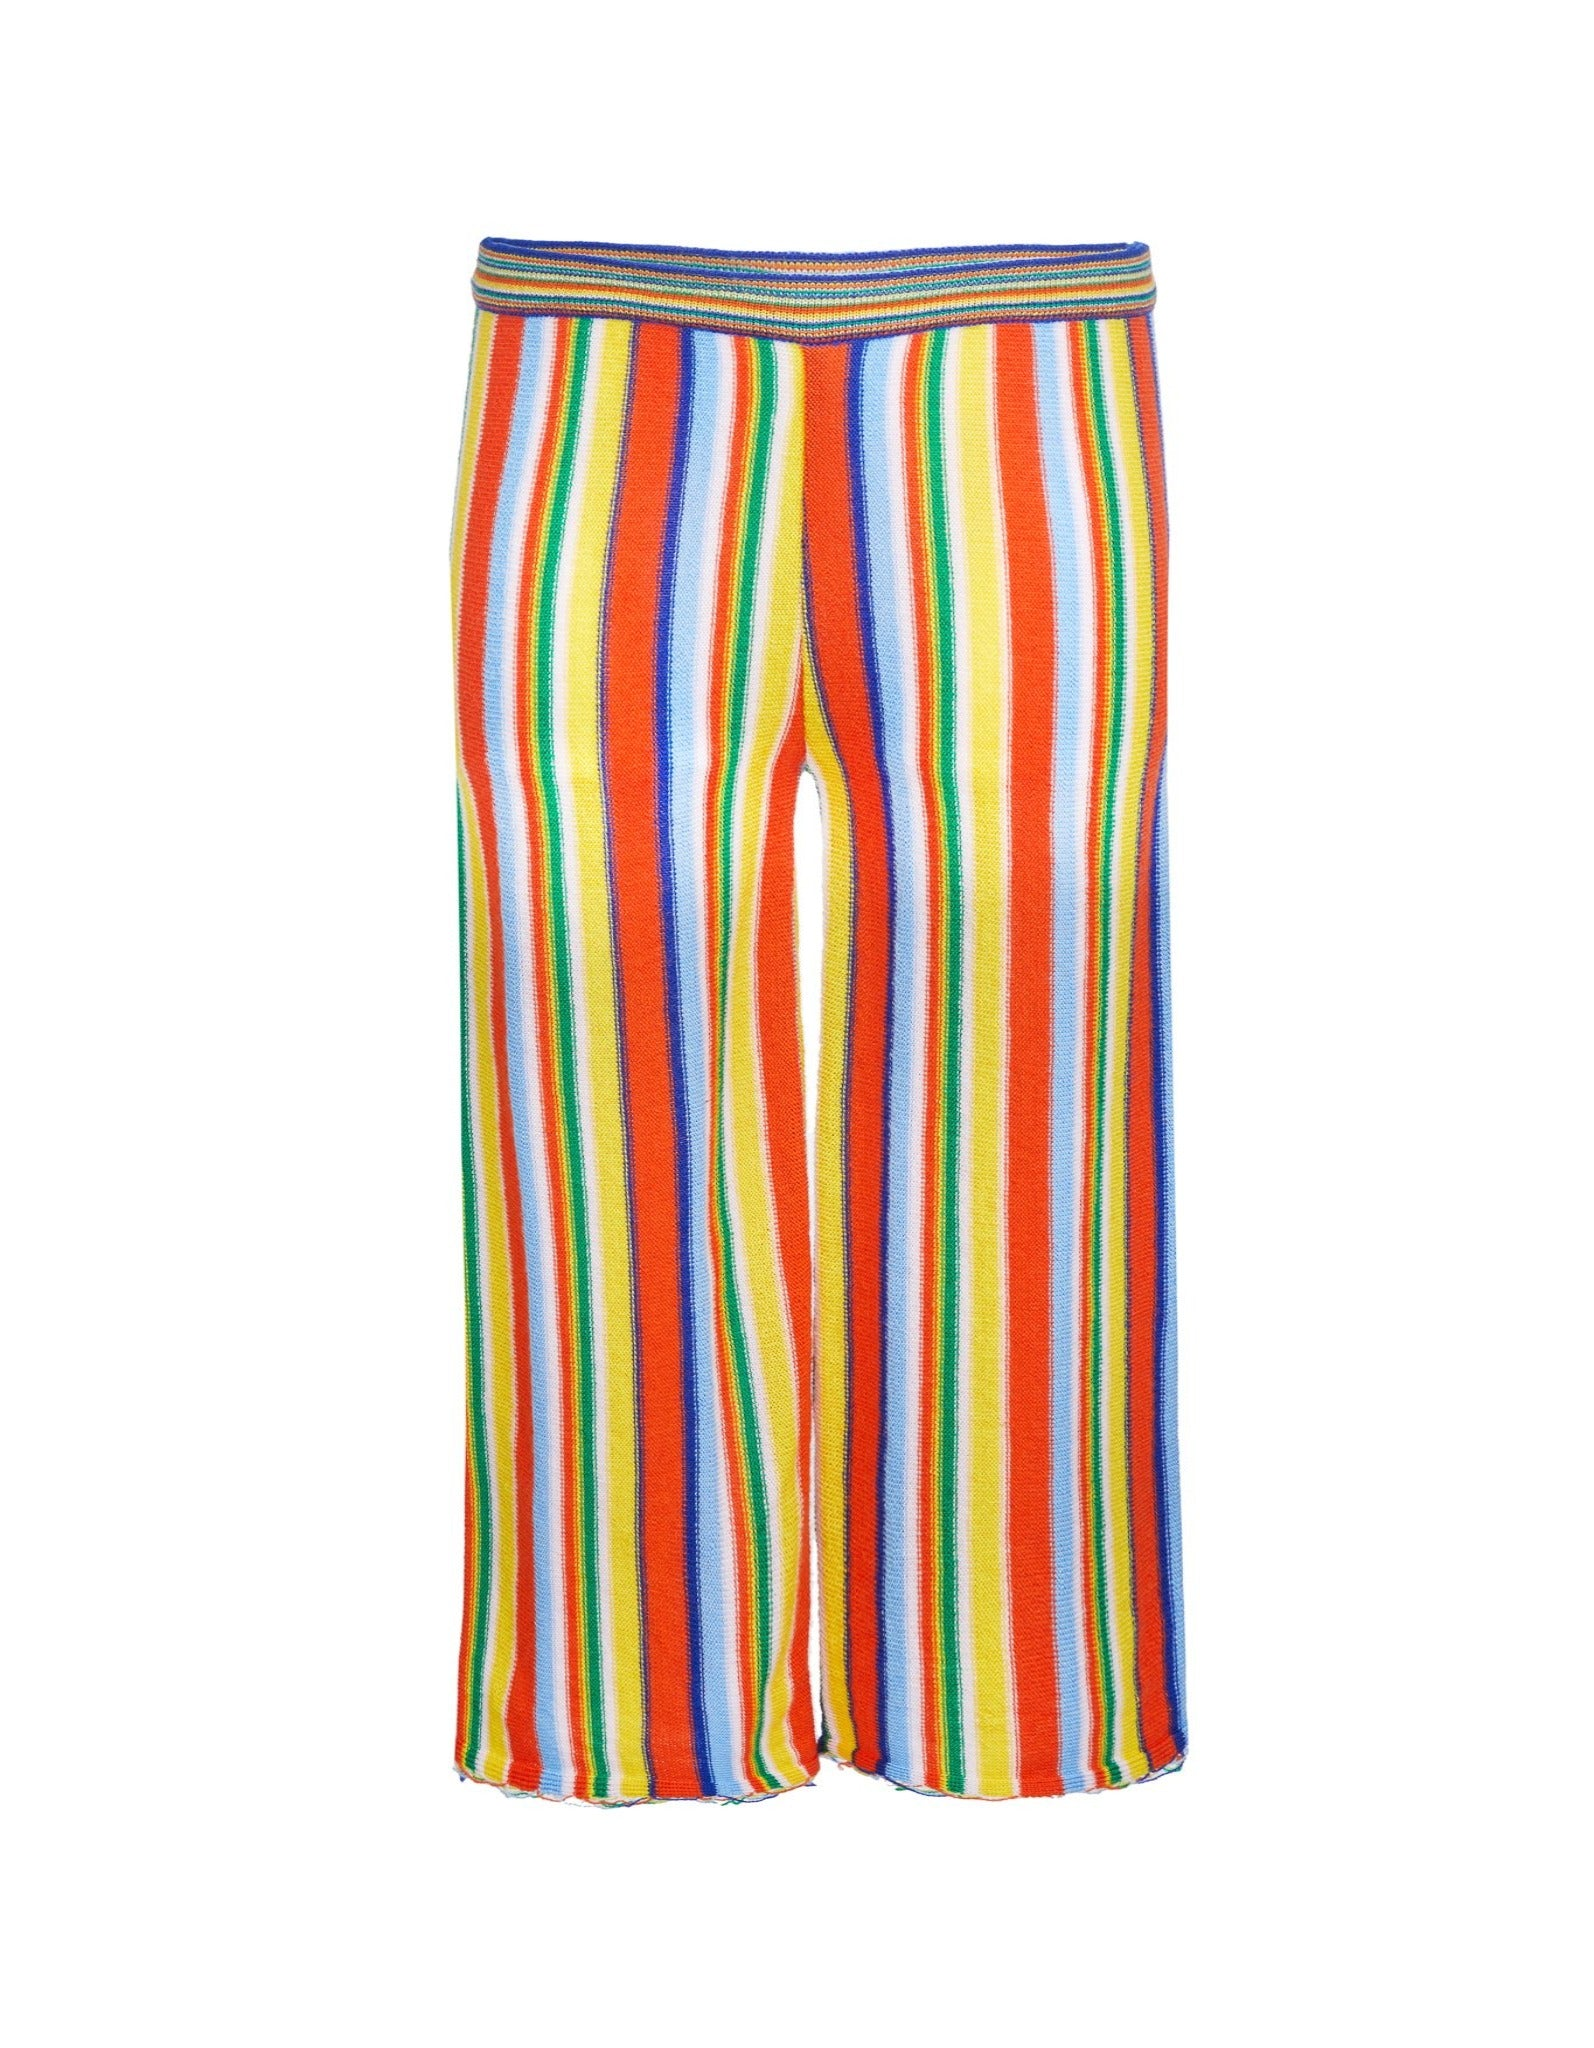 M'A KIDS WAISTBAND TROUSERS IN MULTI STRIPE